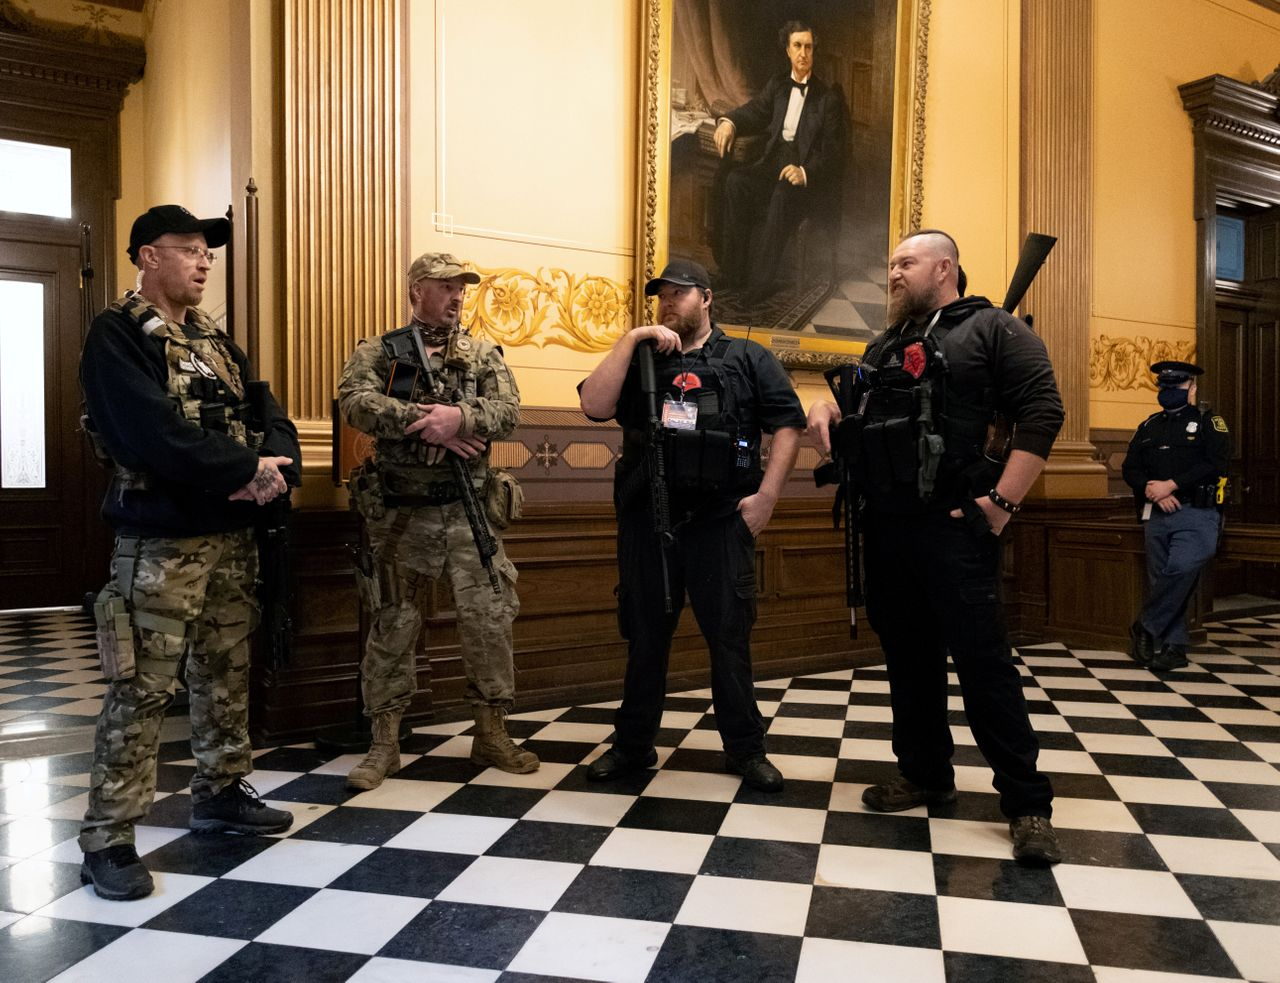 Armed members of a militia group gather at Michigan's Capitol building in April ahead of a vote on the extension of Gov. Gretchen Whitmer's emergency declaration/stay-at-home order due to the coronavirus.